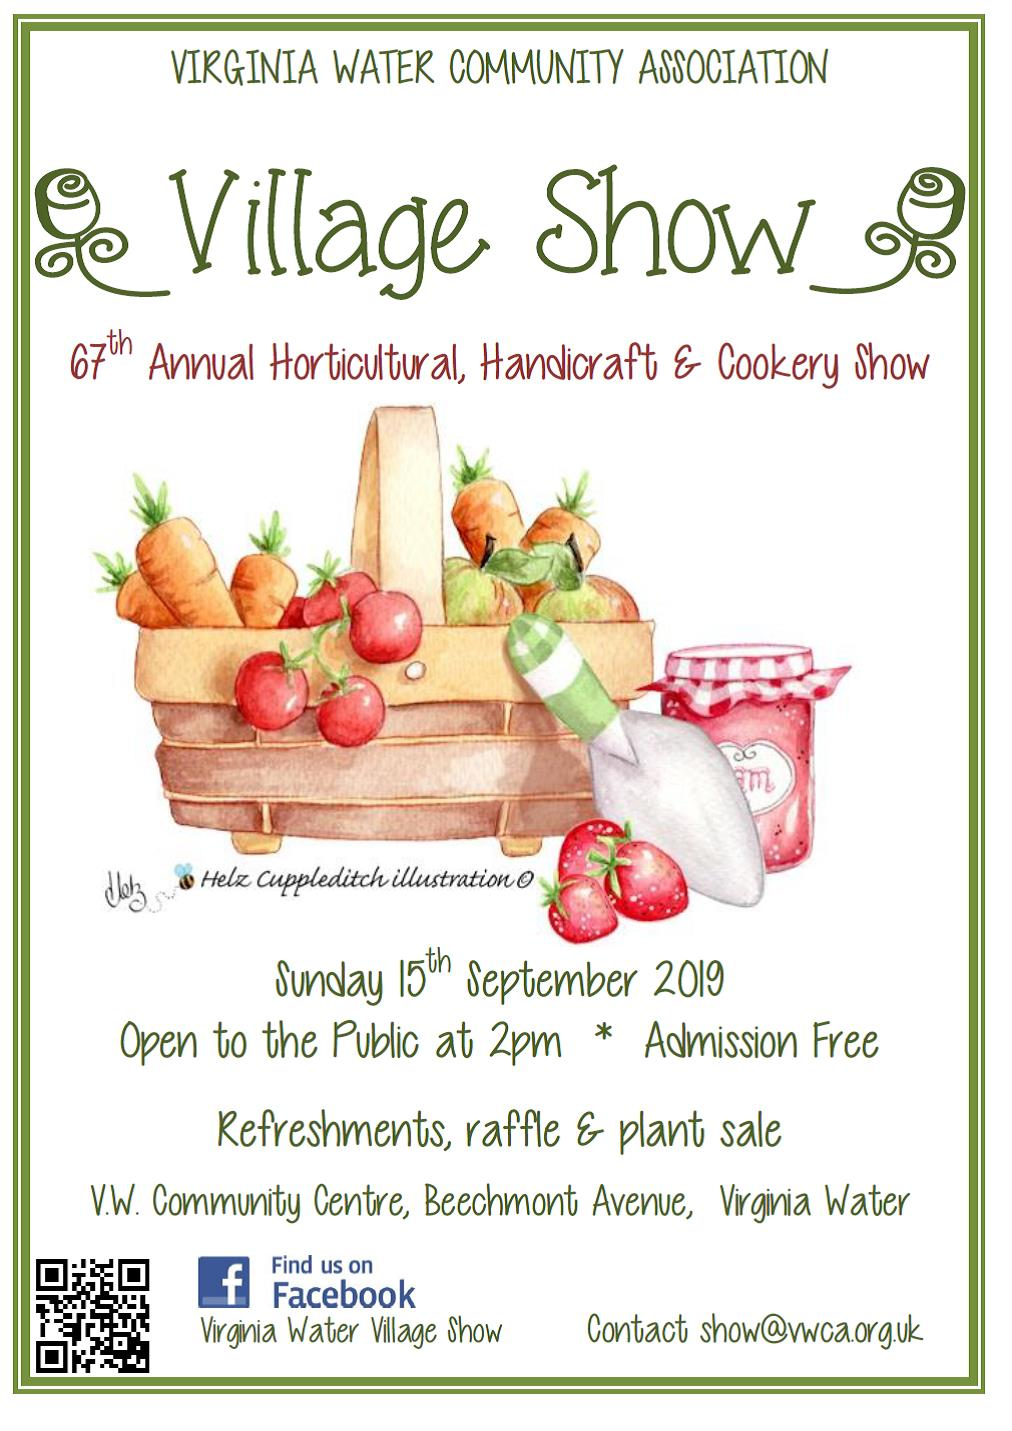 Virginia Water Village Show